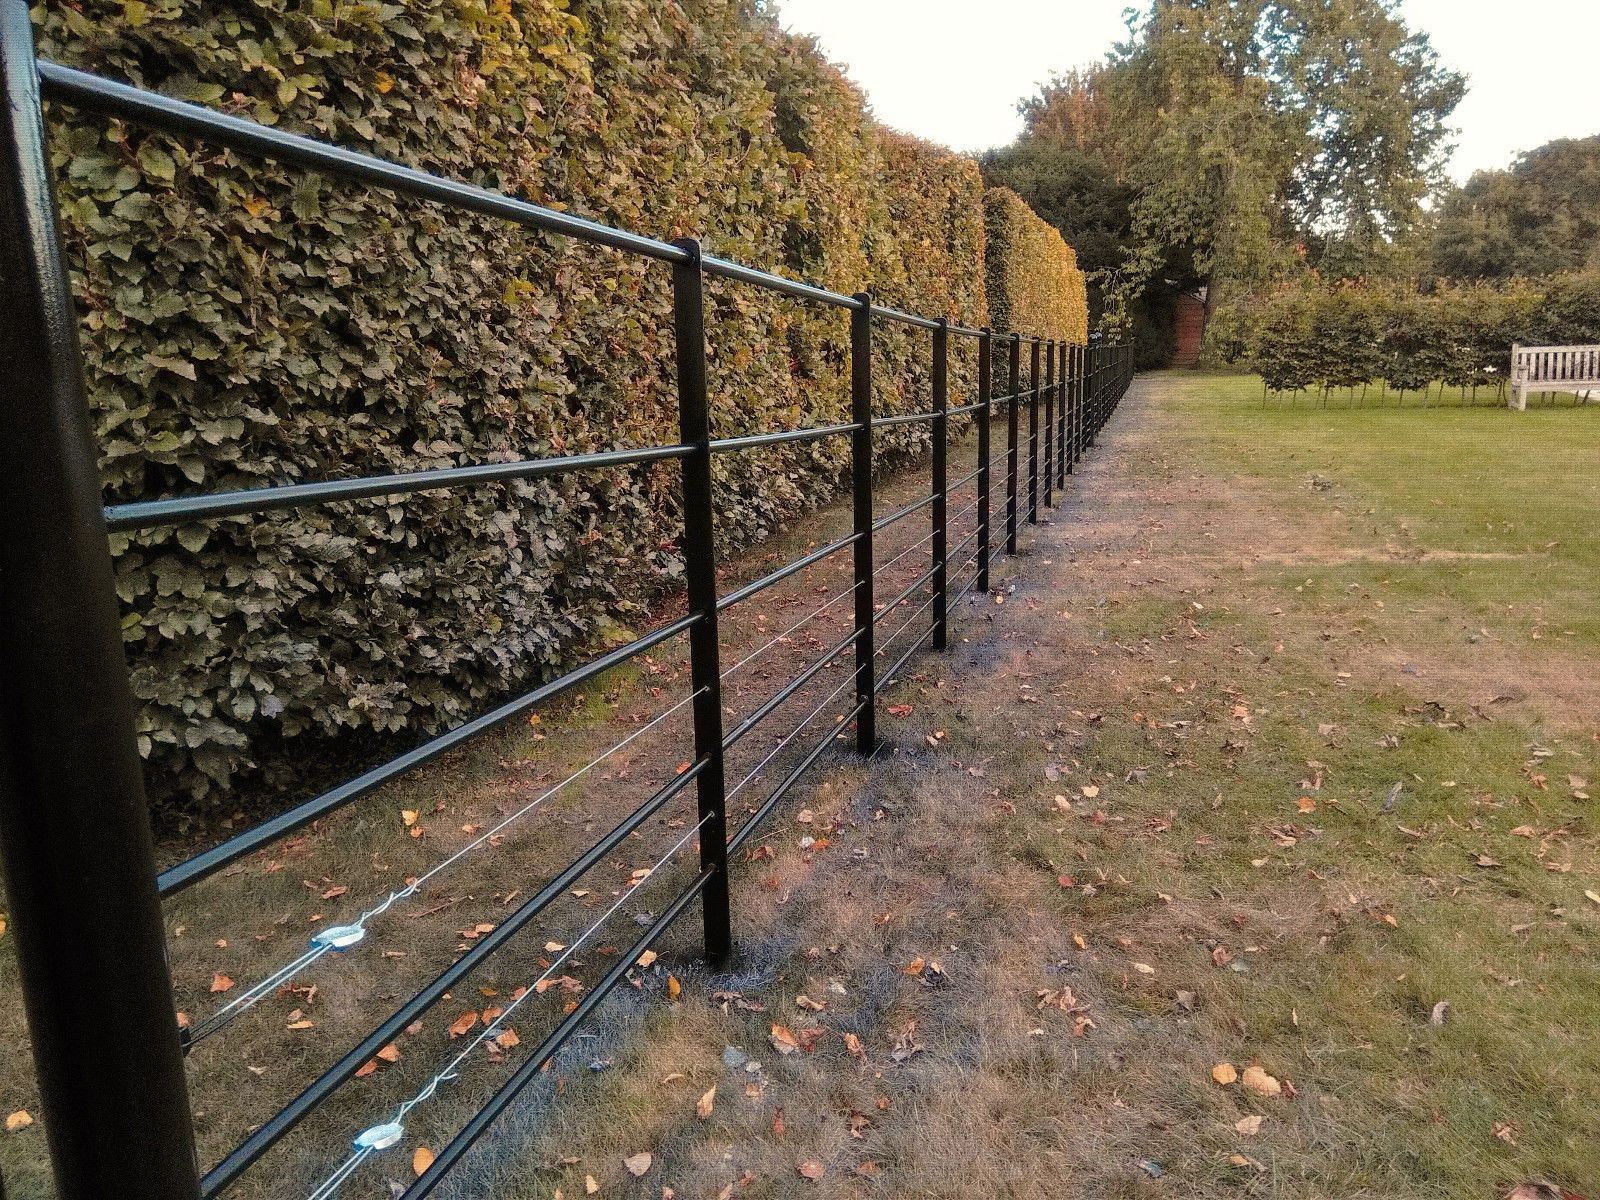 Privacy screen for chain link fence ebay - Details About Estate Fencing Heavy Dty 1 2m Steel Metal Railings Wrought Iron Park Fencing